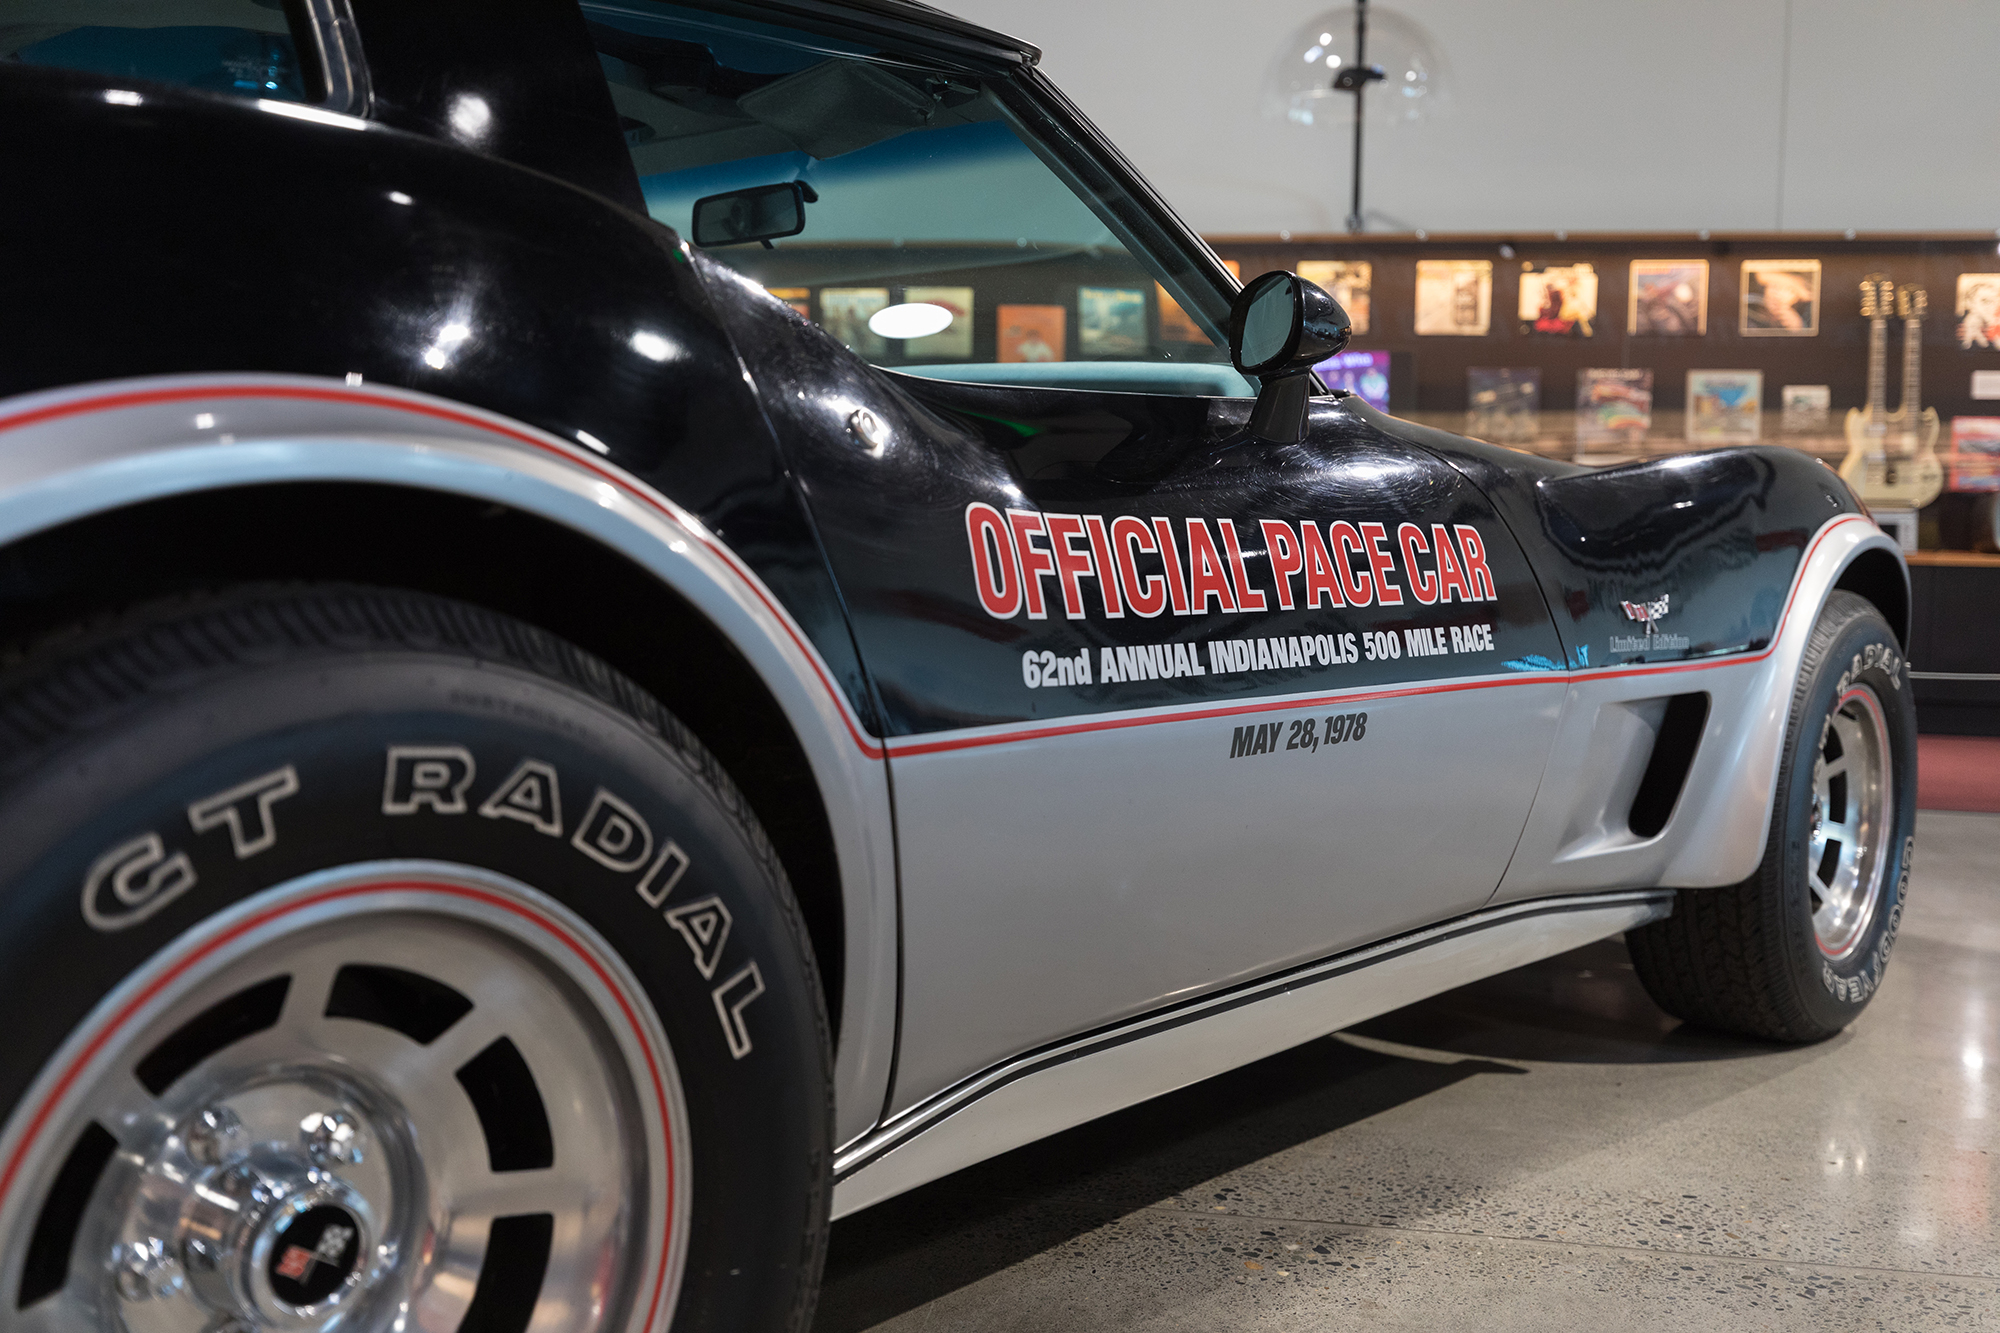 Black Corvette which was the Official Pace car of the Indy 500 on May 28, 1978 on display at World of Speed in Wilsonville